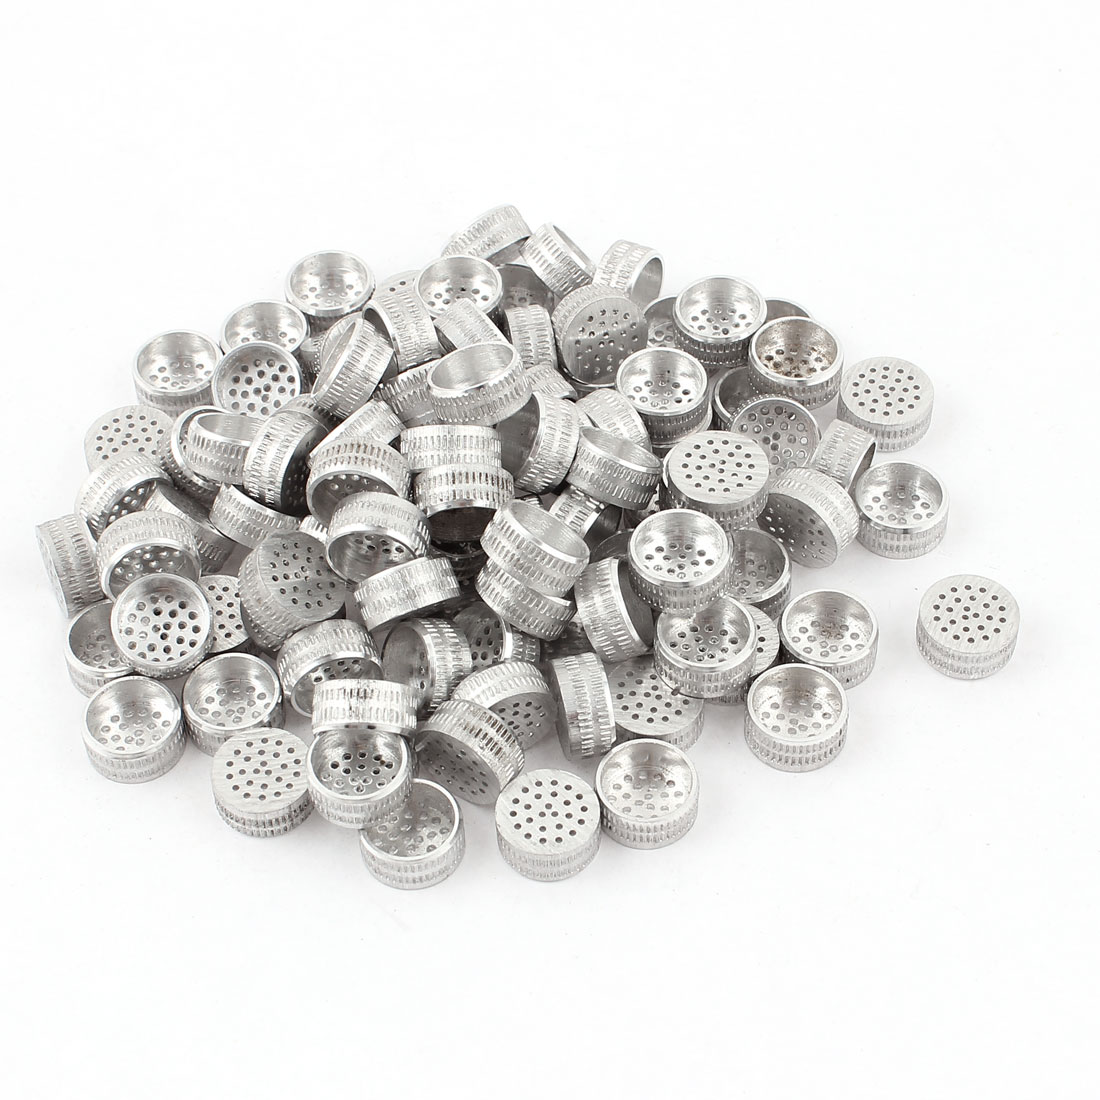 100pcs Silver Tone Aluminium Hole Type Core Box Vents 12mm x 5mm